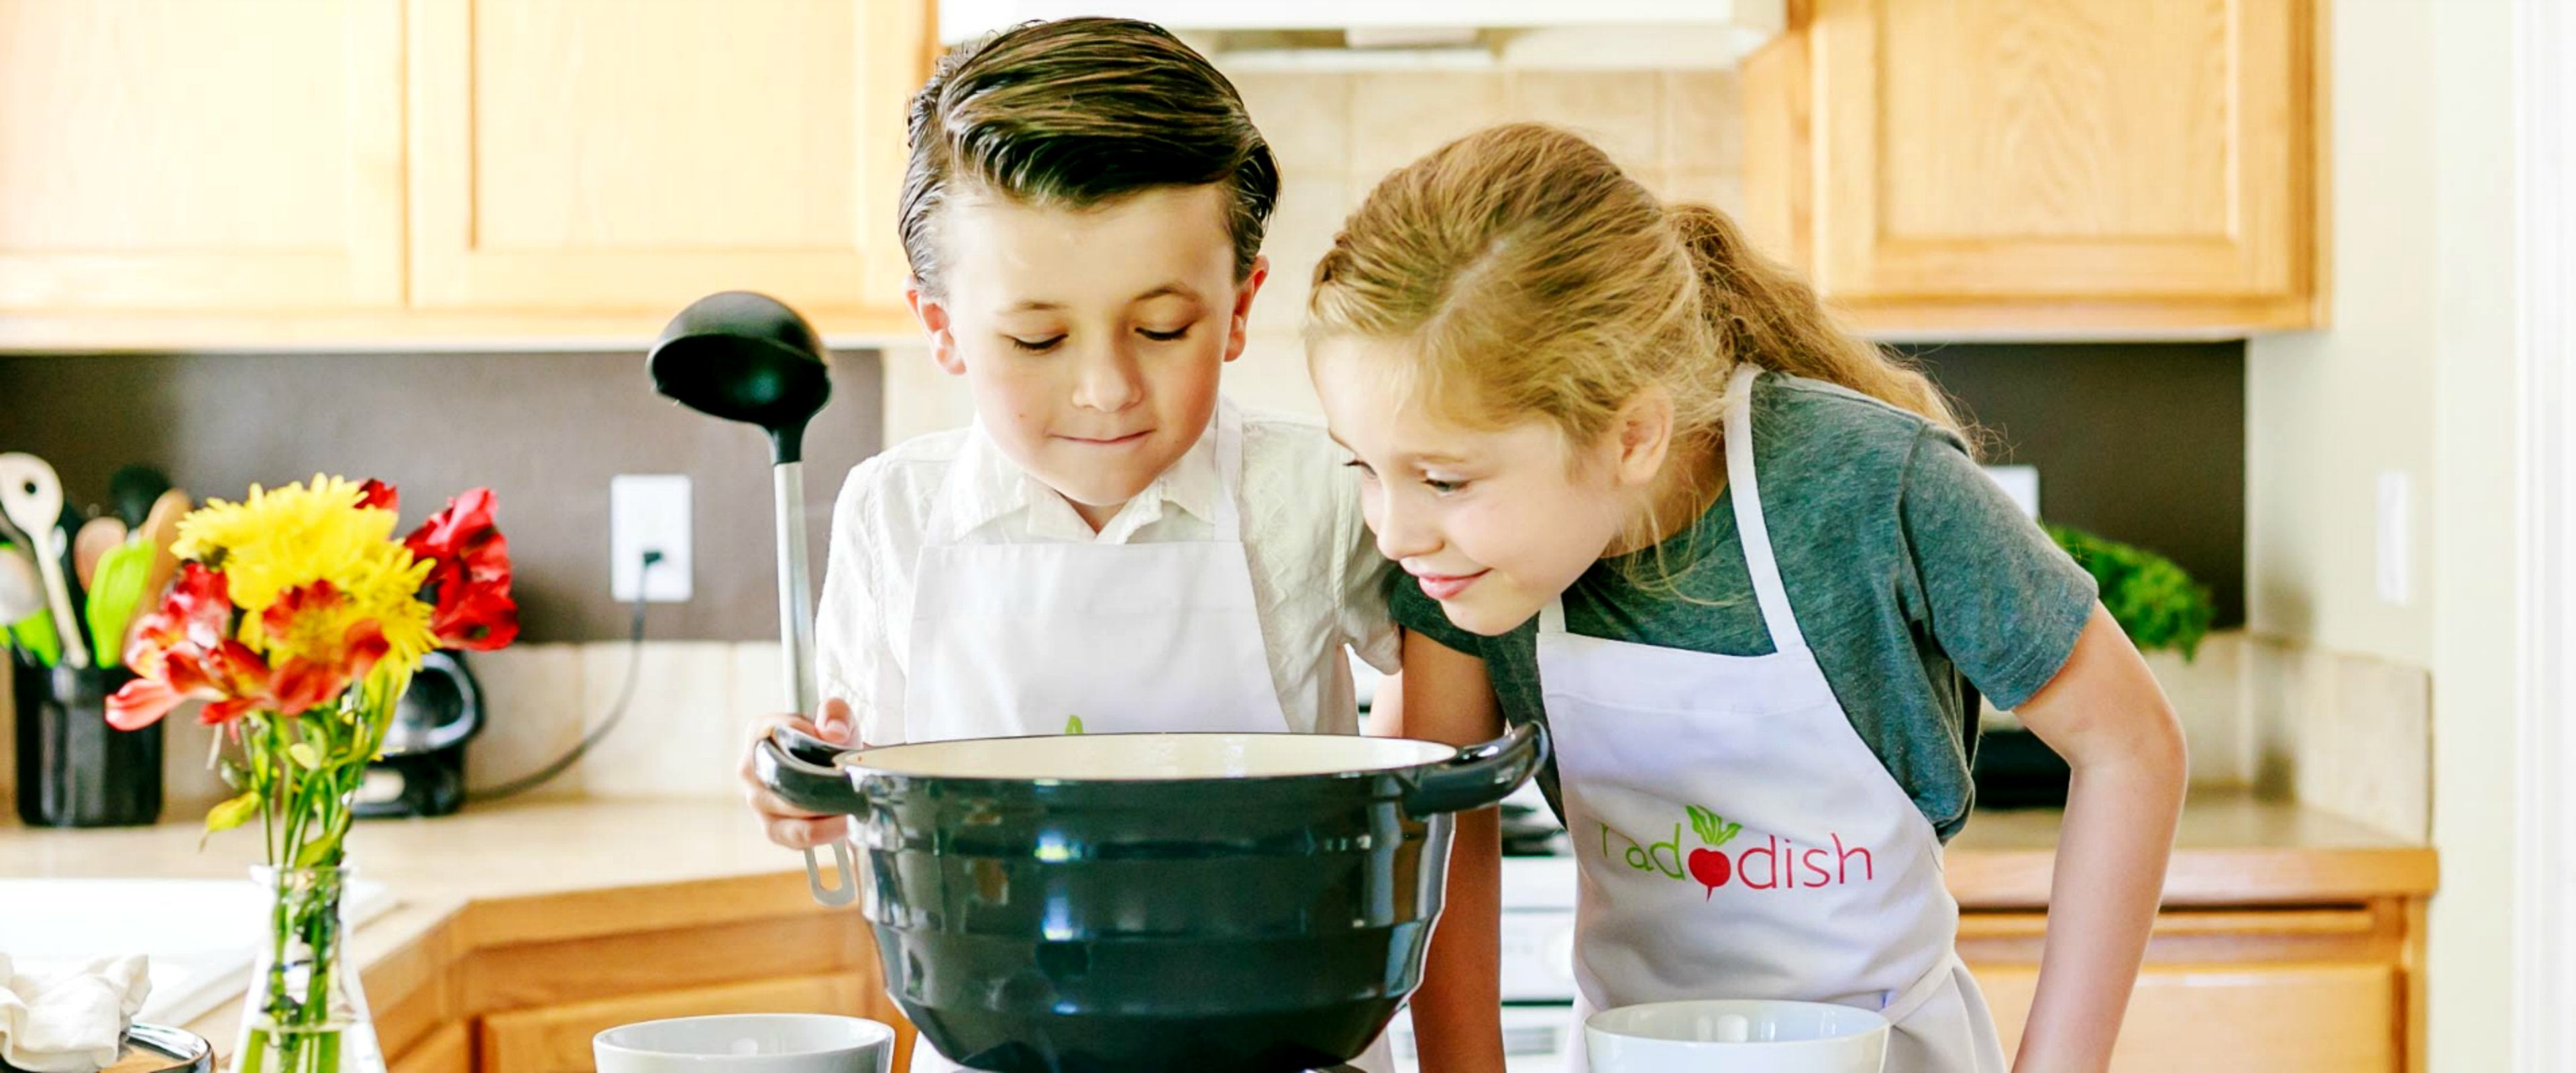 A Cooking Club For Kids